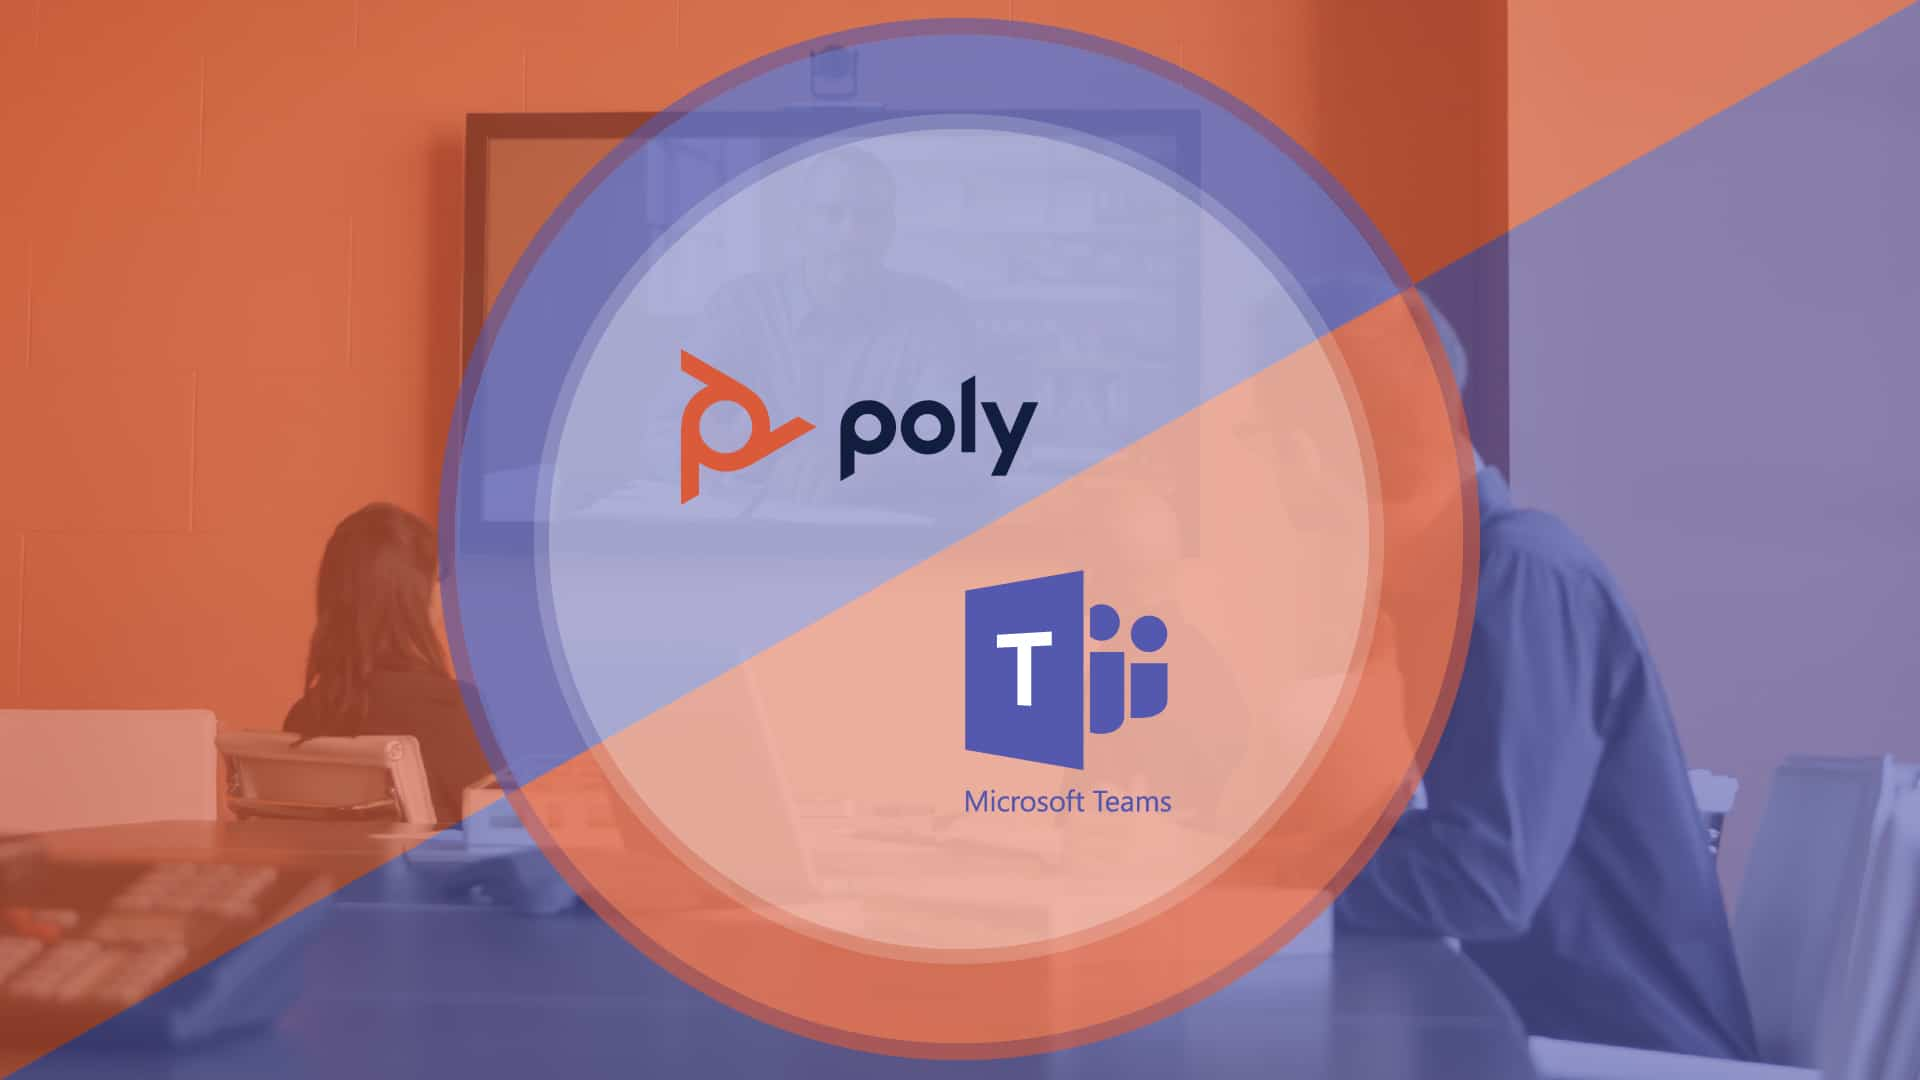 Poly & Microsoft Teams